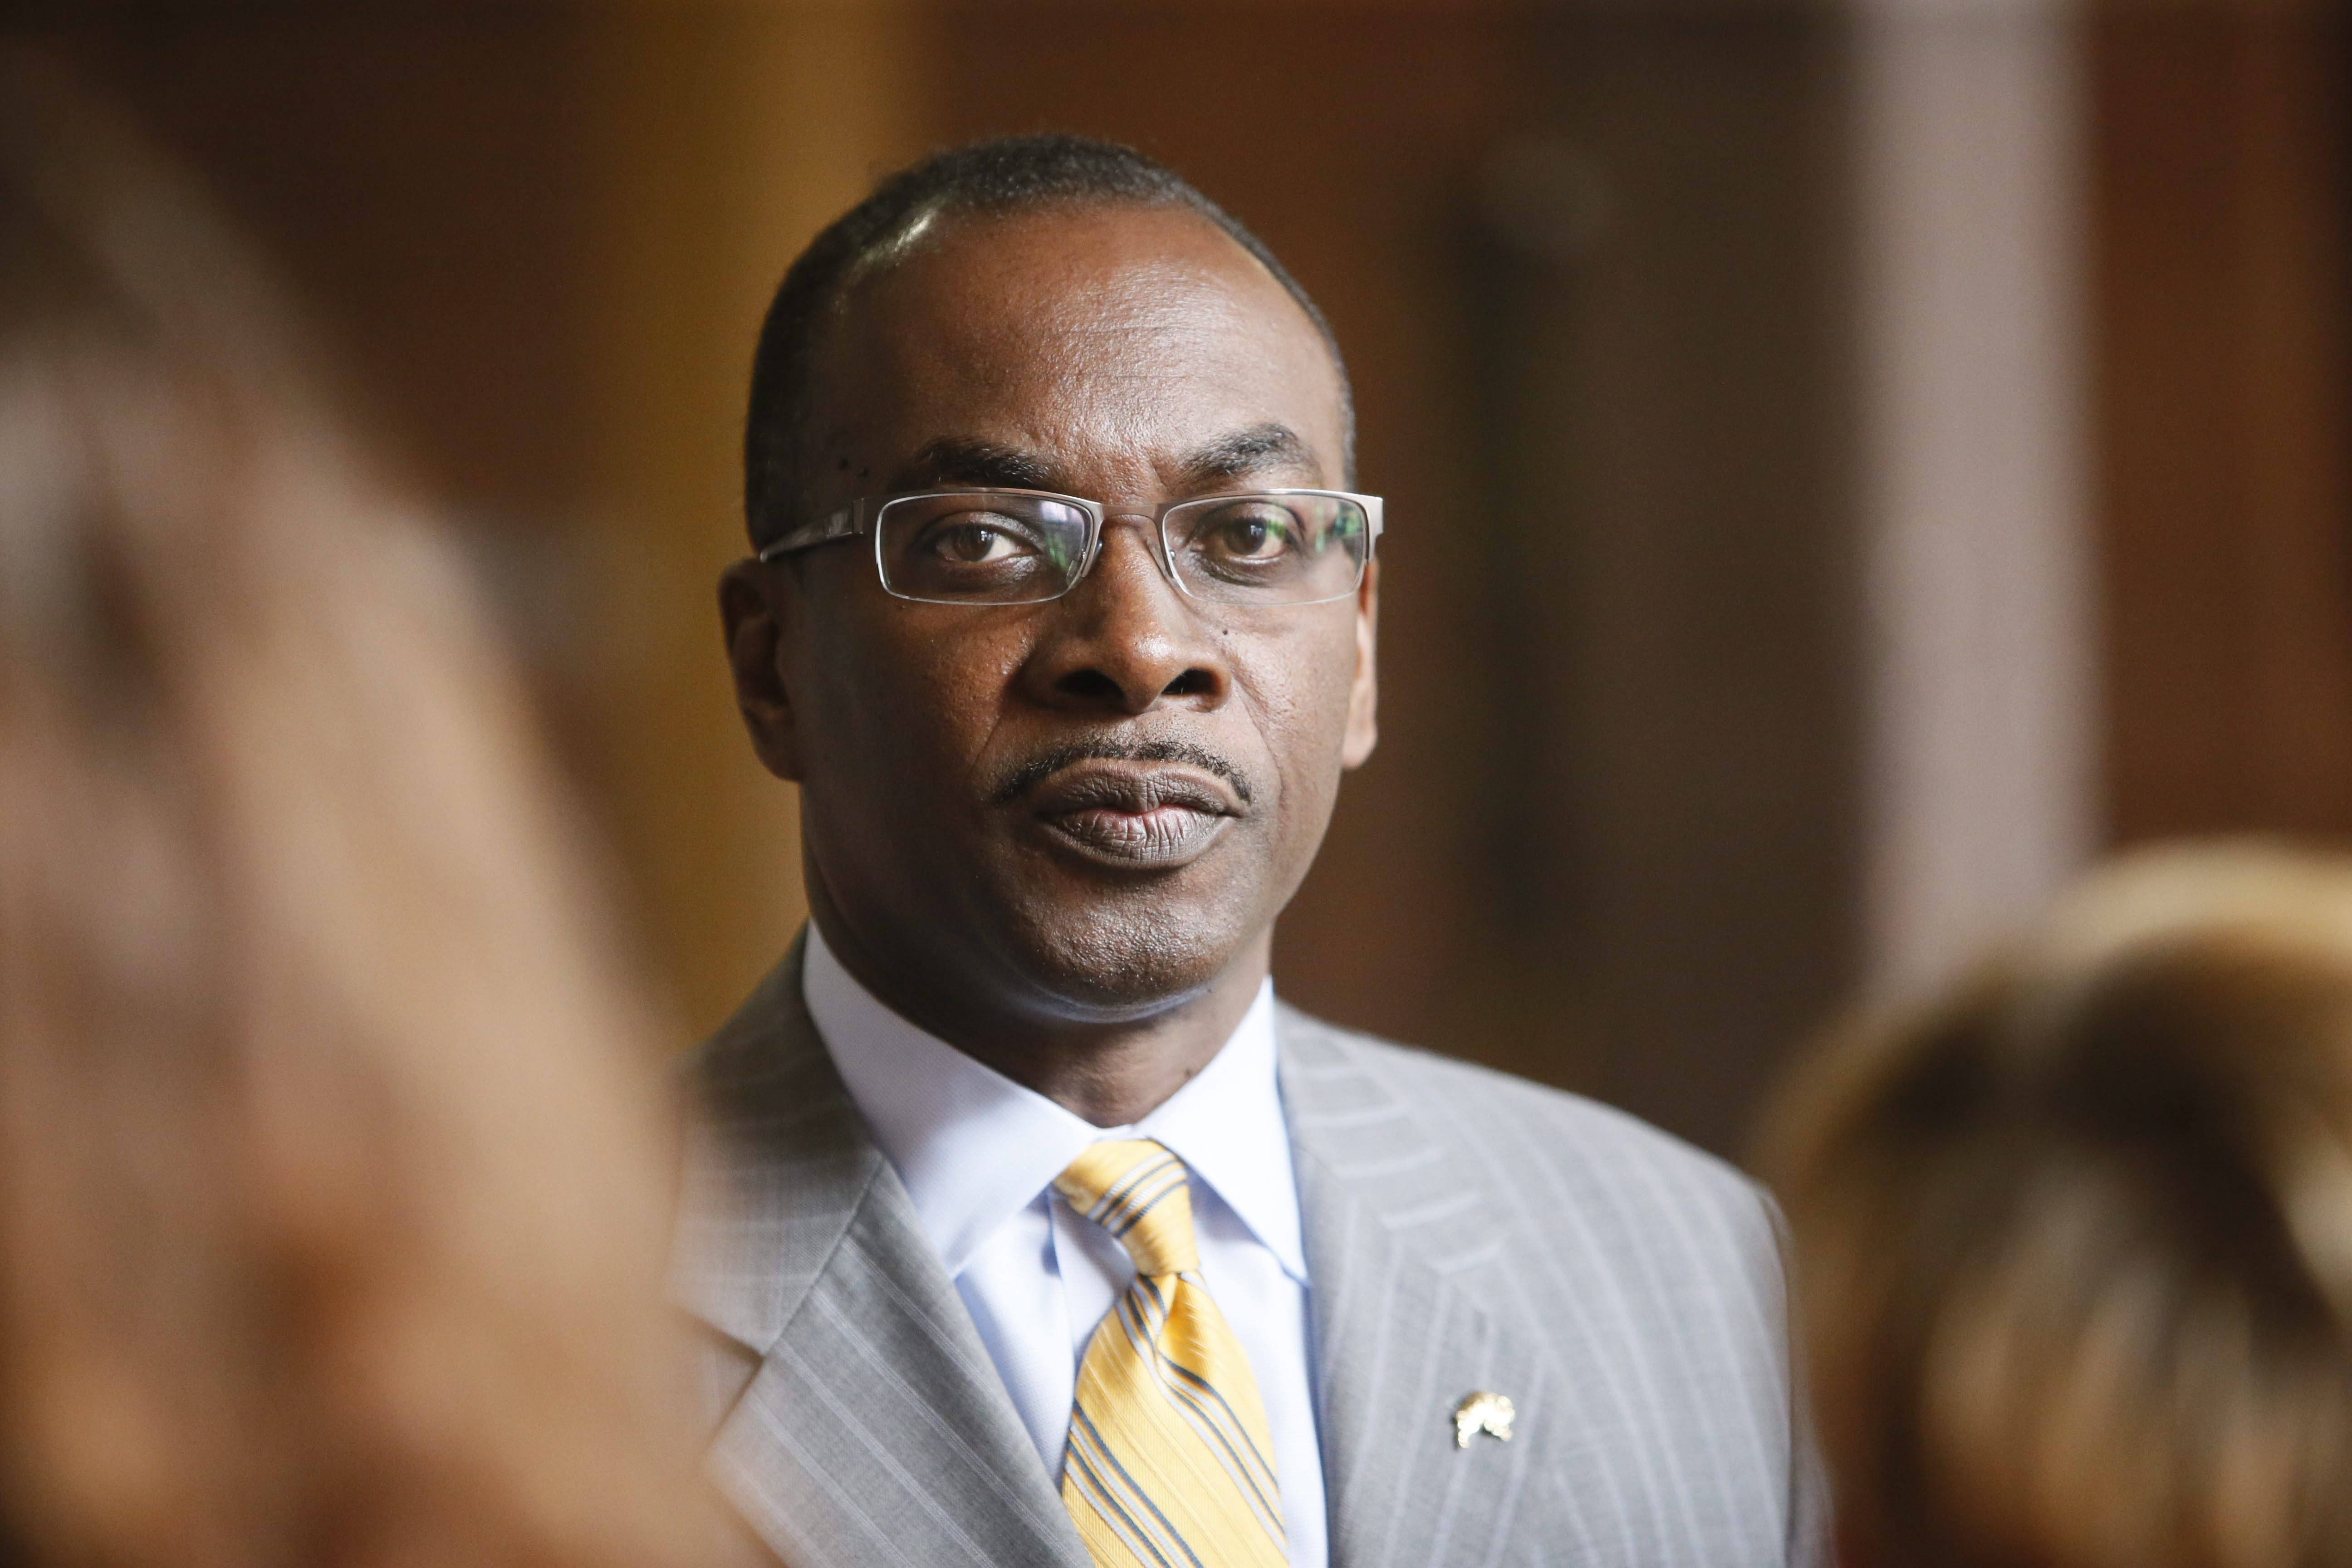 Buffalo Mayor Byron Brown is not running for reelection this year, but his campaign fund spent more in the last 12 months than his primary and general election opponents combined in the last mayoral race.  (Derek Gee/Buffalo News file photo)